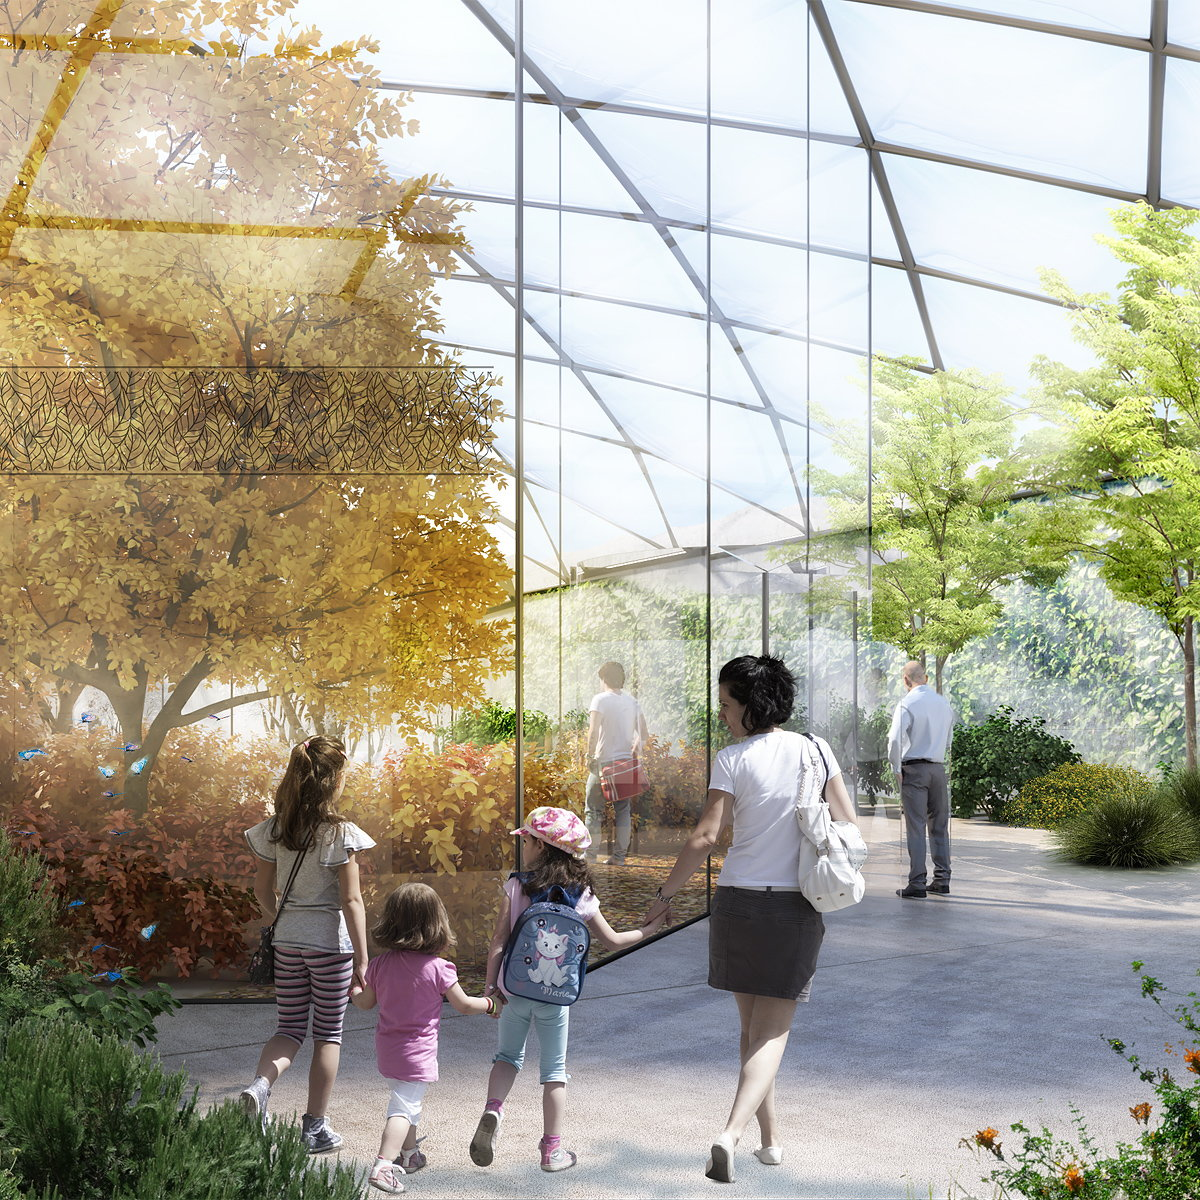 Garden of the Four Seasons by Carlo Ratti Associati